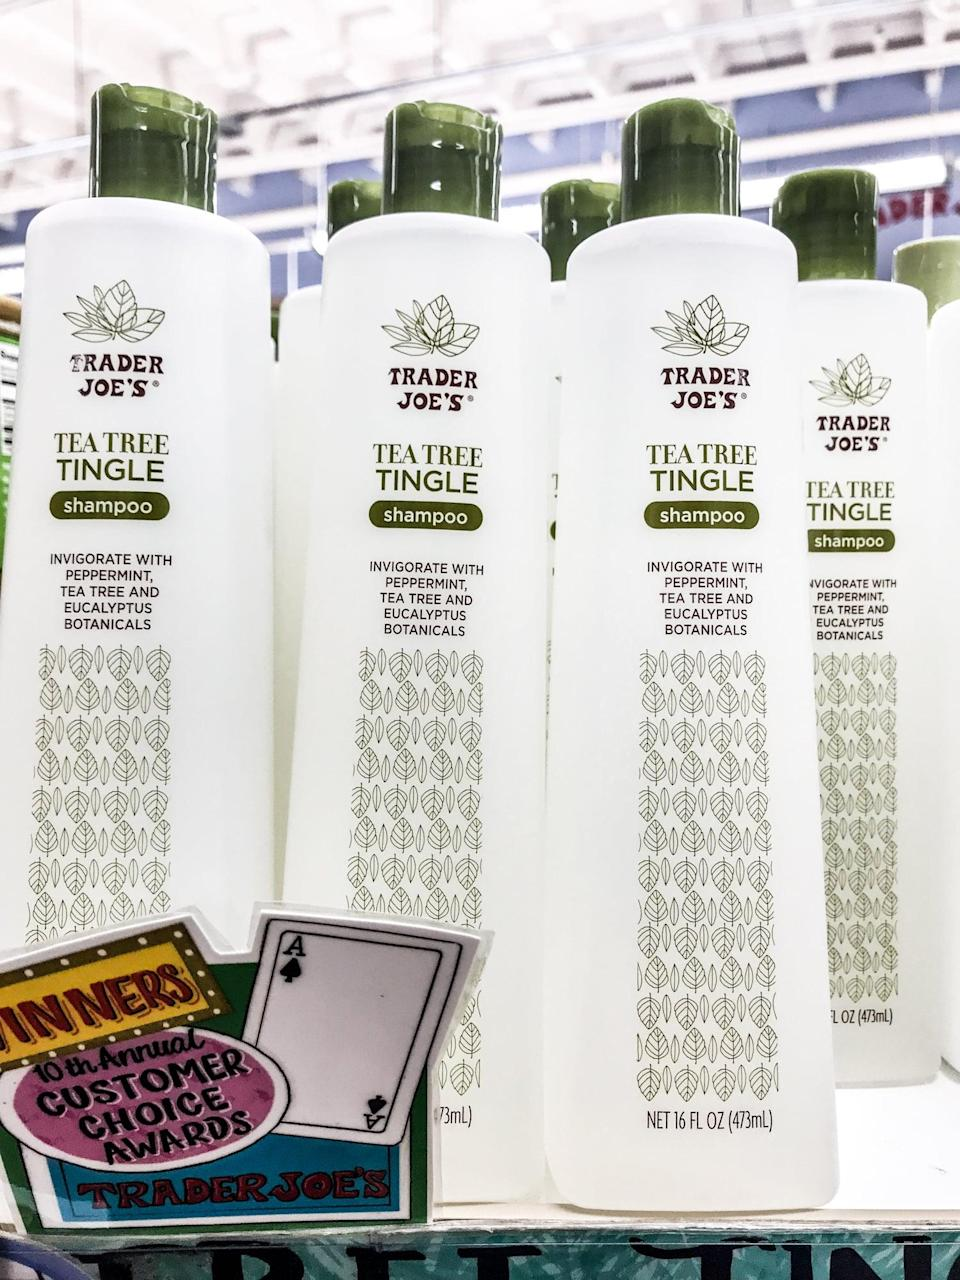 <p>Your shampoo needs a match, obviously. Condition those locks with the tingling combo of natural elements, also for under $5.</p>